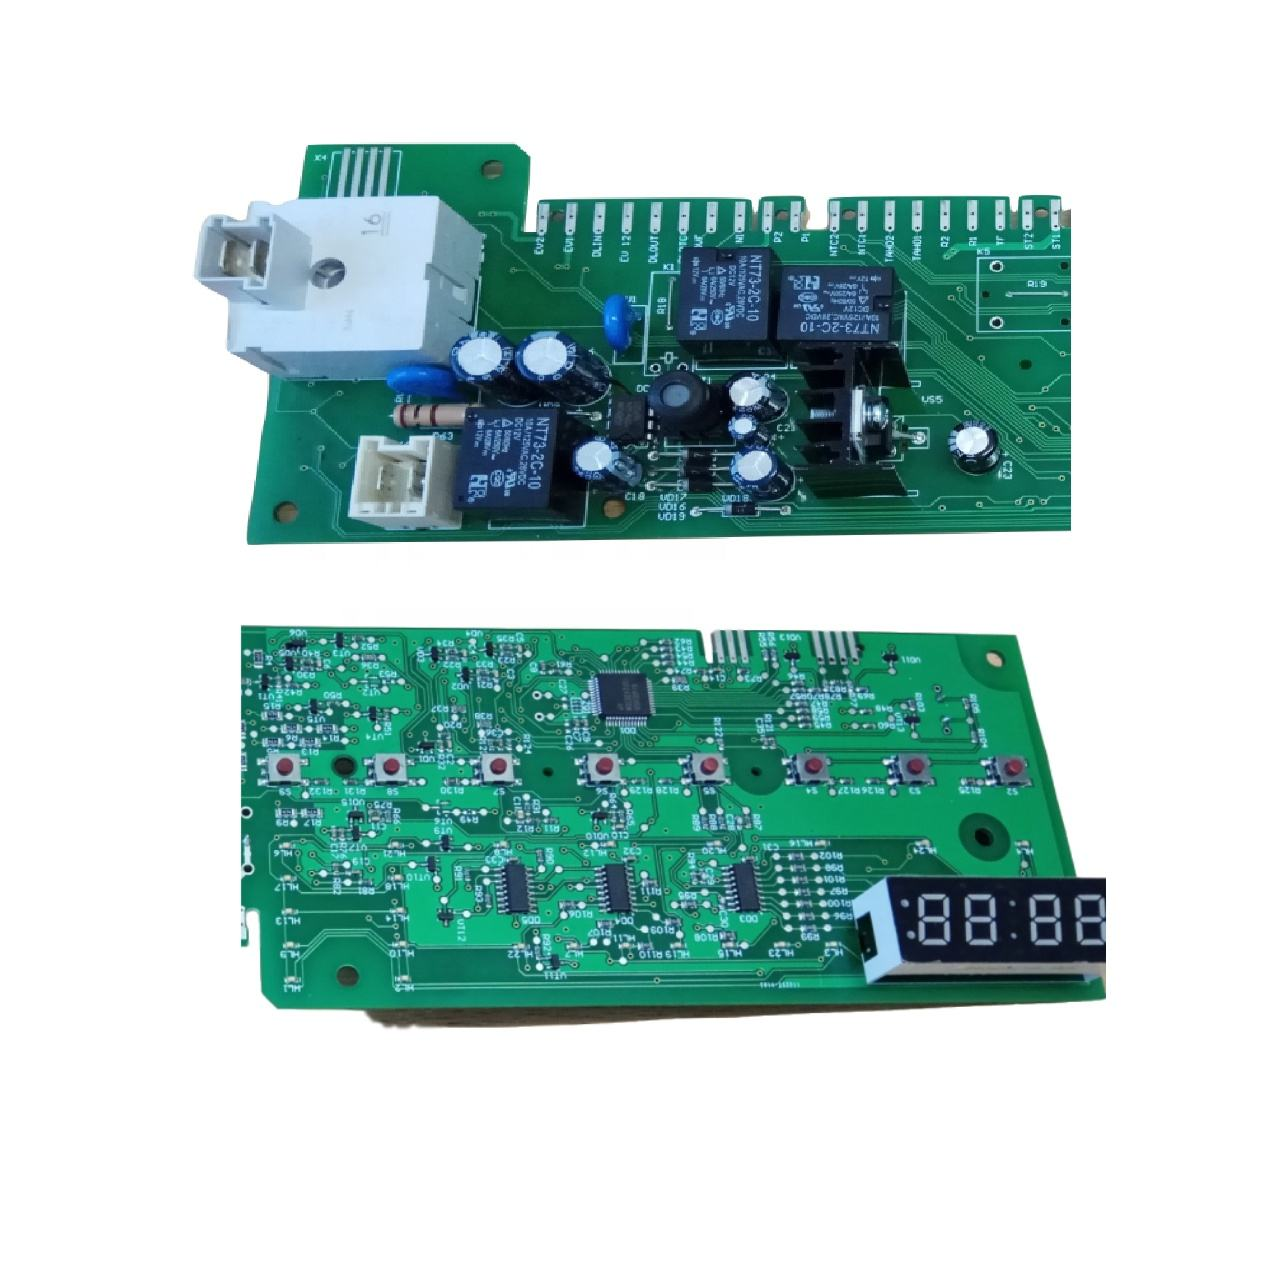 Drum washing machine control board Provide PCBA assembly service